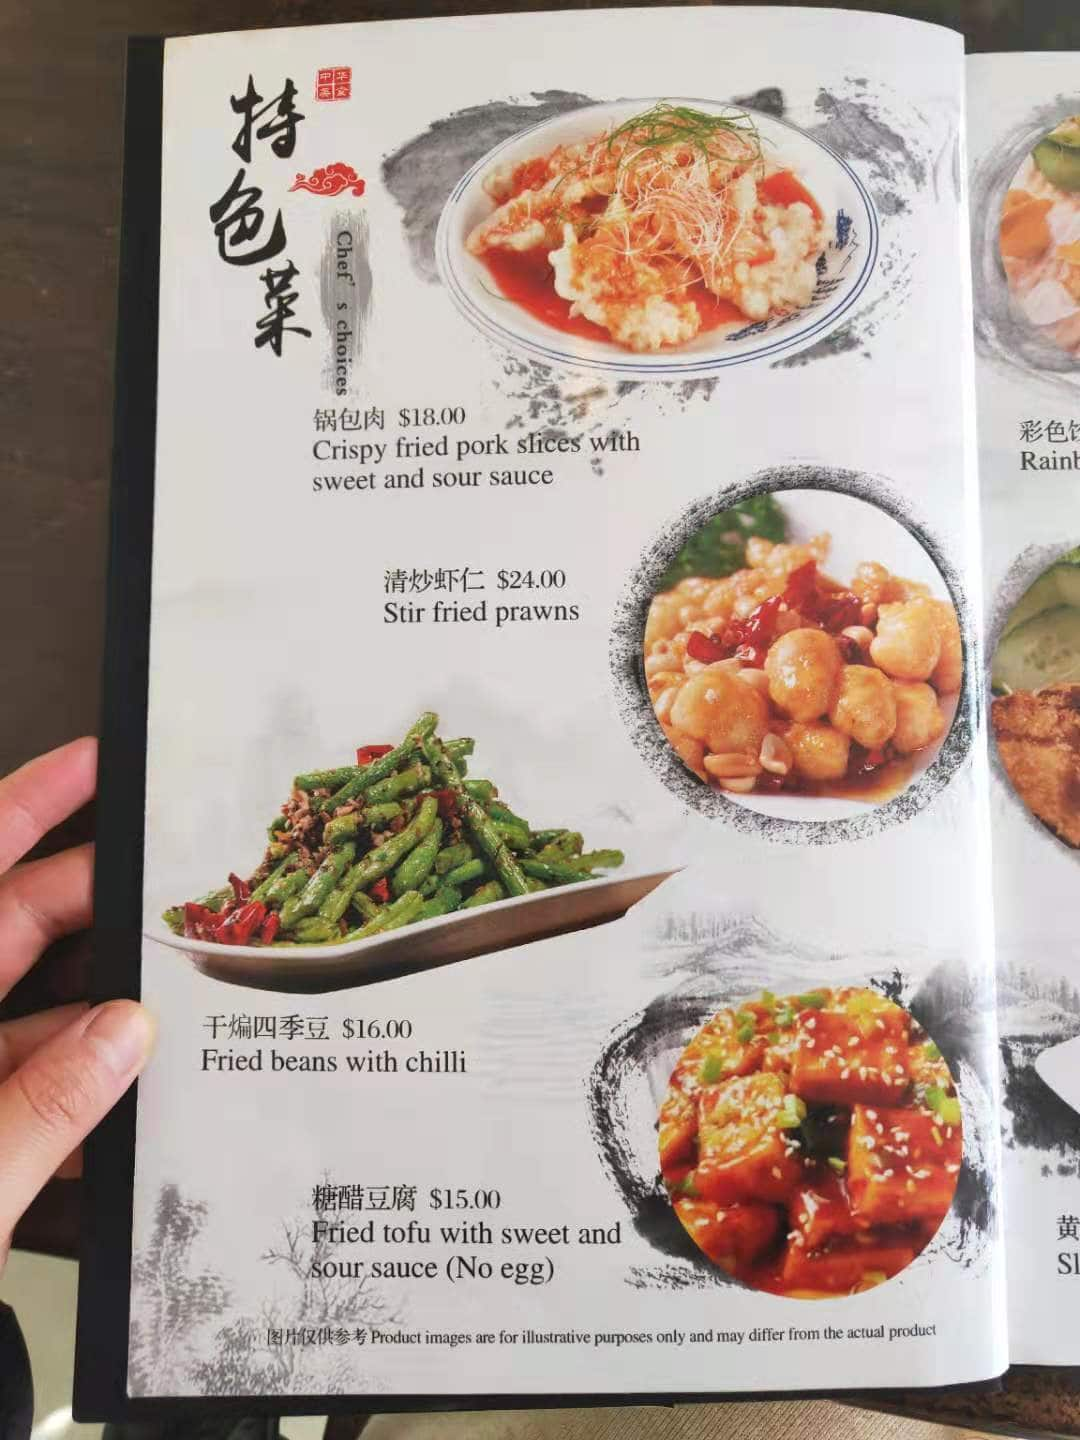 Mr Zhou's Dumplings New Lynn 周记饺子馆 Menu - Menumania/Zomato